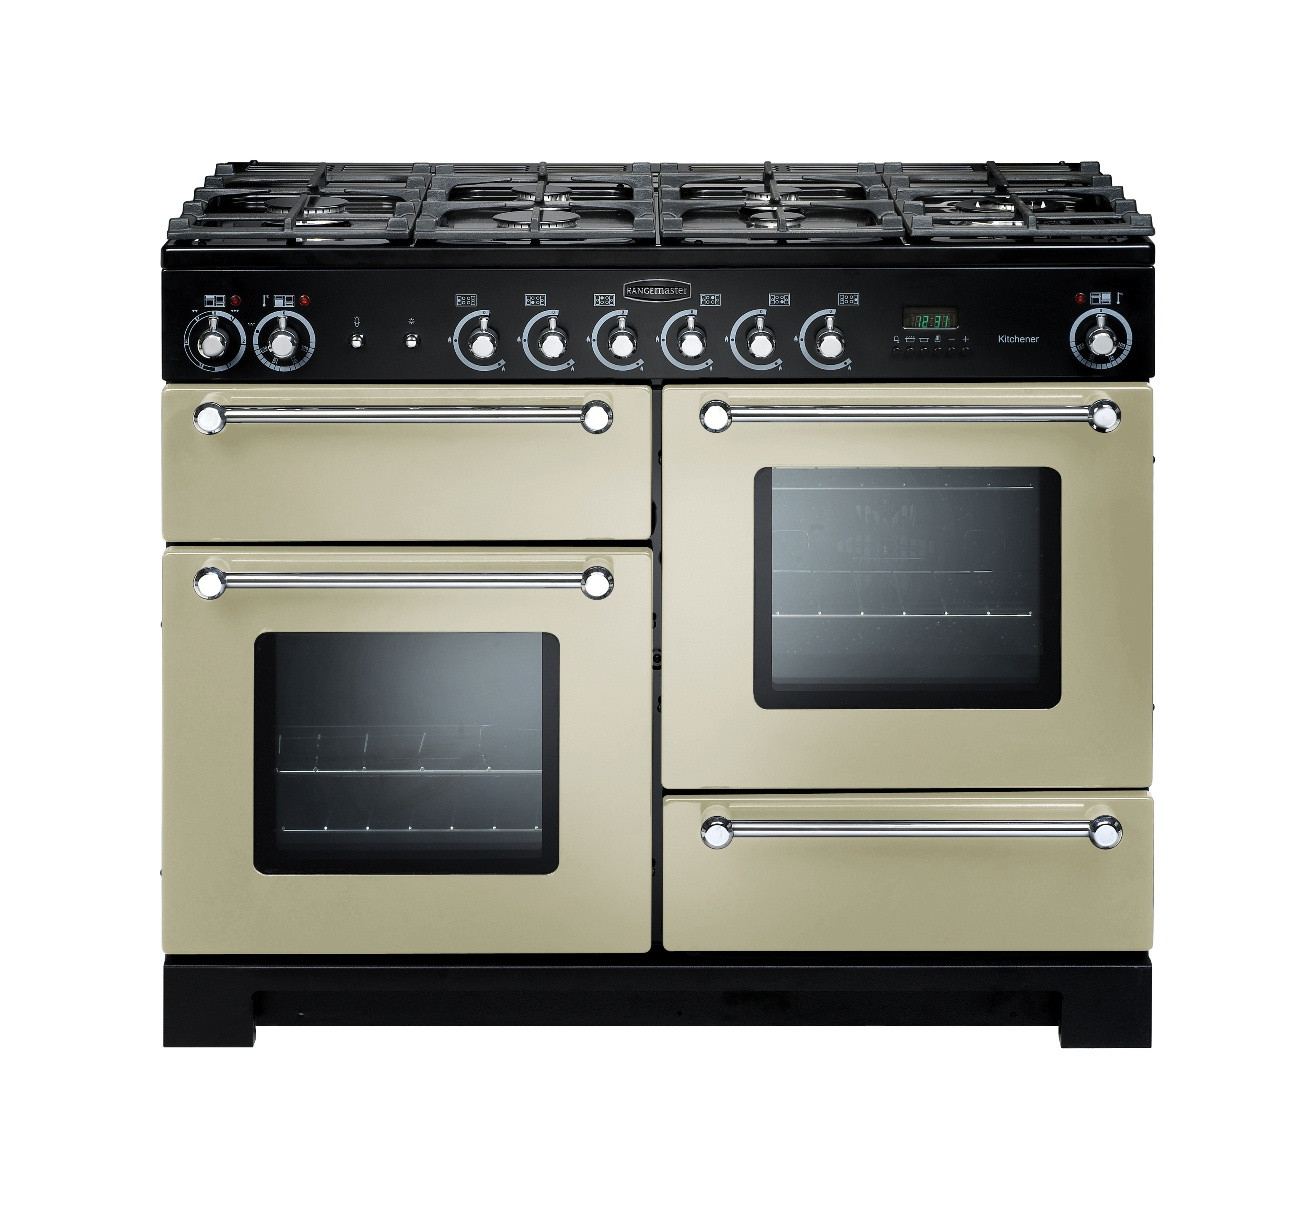 Rangemaster Kitchener 110 Dual Fuel Cream Range Cooker KCH110DFFCR/C 76770